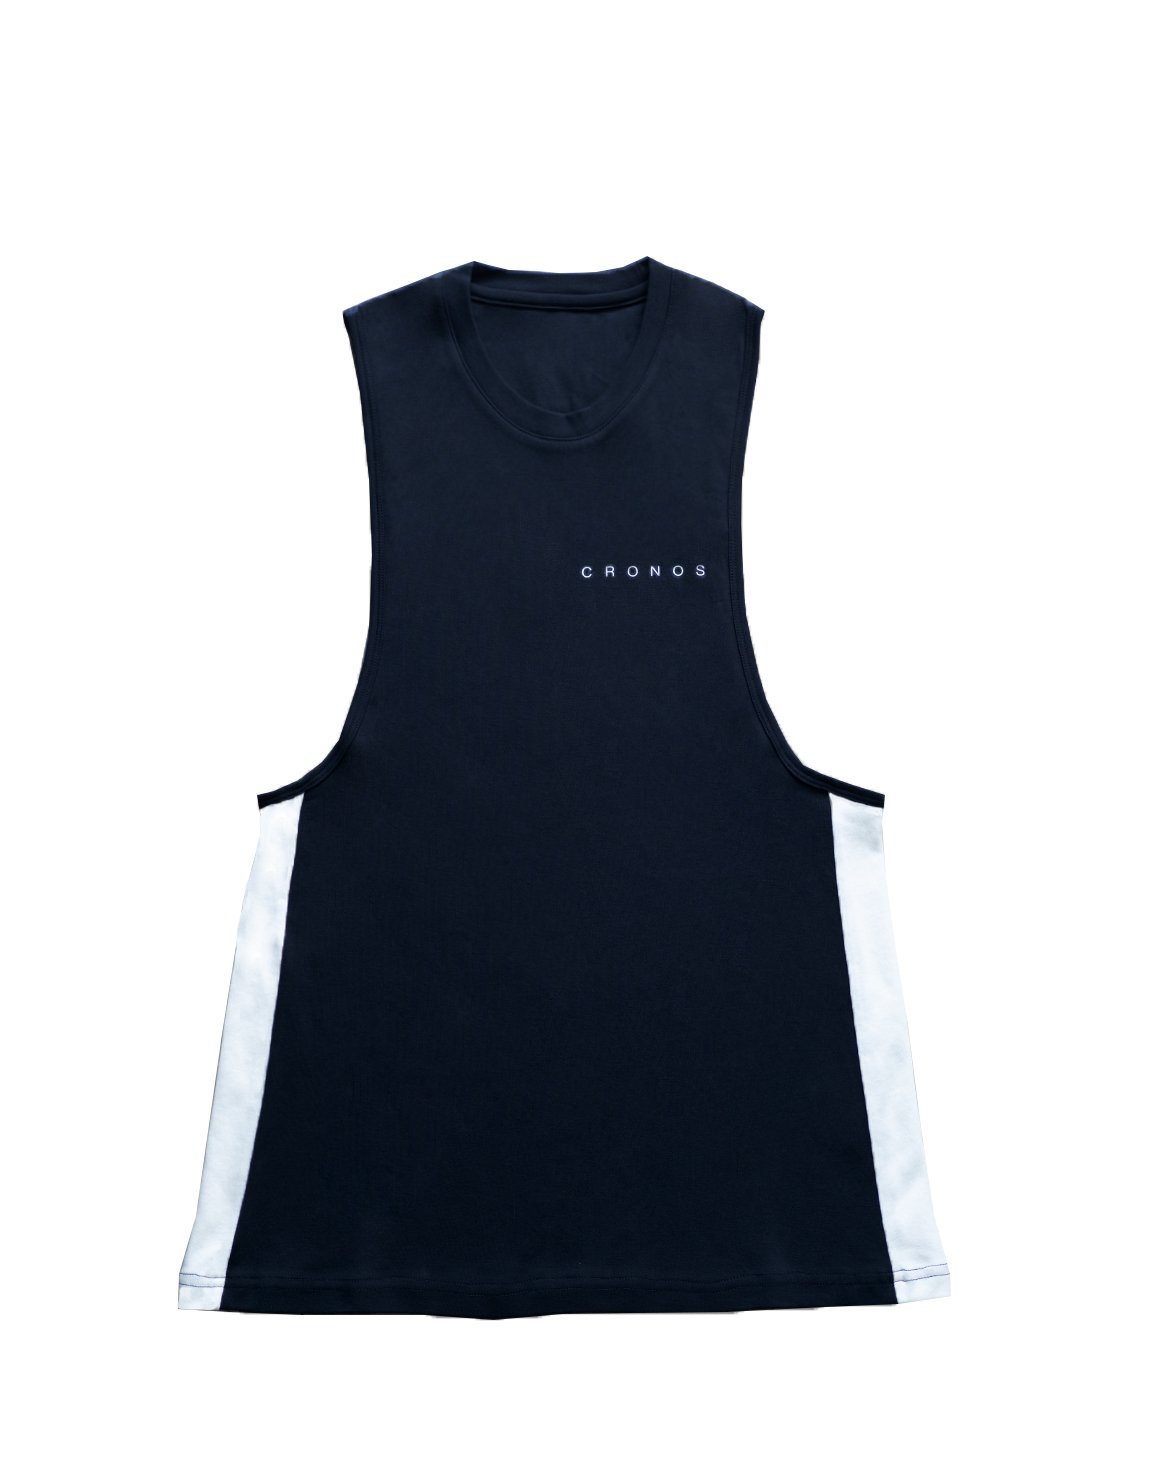 <img class='new_mark_img1' src='https://img.shop-pro.jp/img/new/icons1.gif' style='border:none;display:inline;margin:0px;padding:0px;width:auto;' />FRONT FONT LOGO TANK TOP【BLACK】